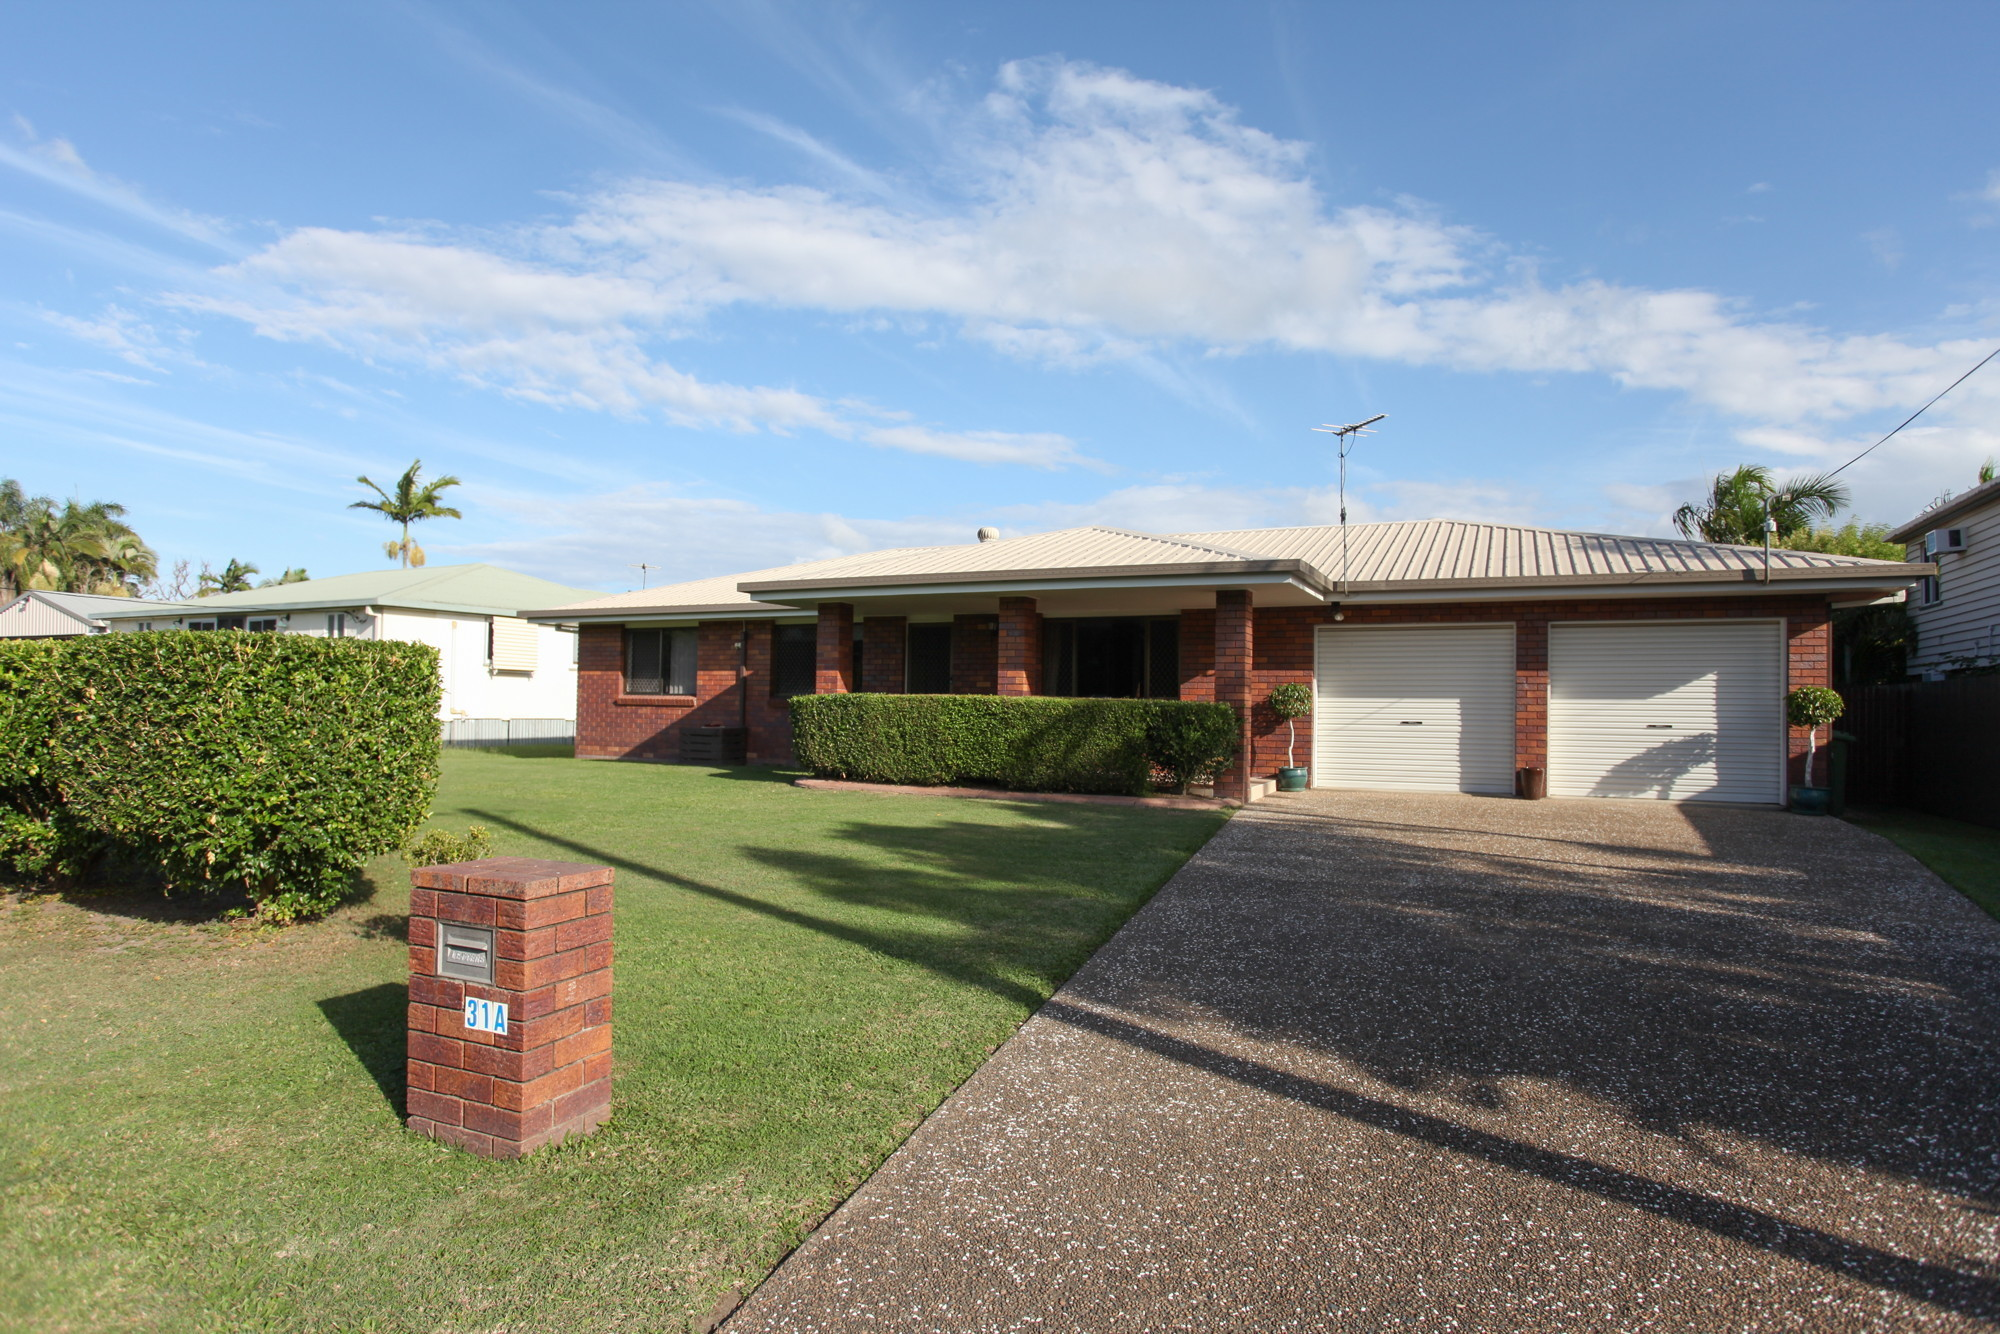 31A Pugsley Street, Walkerston